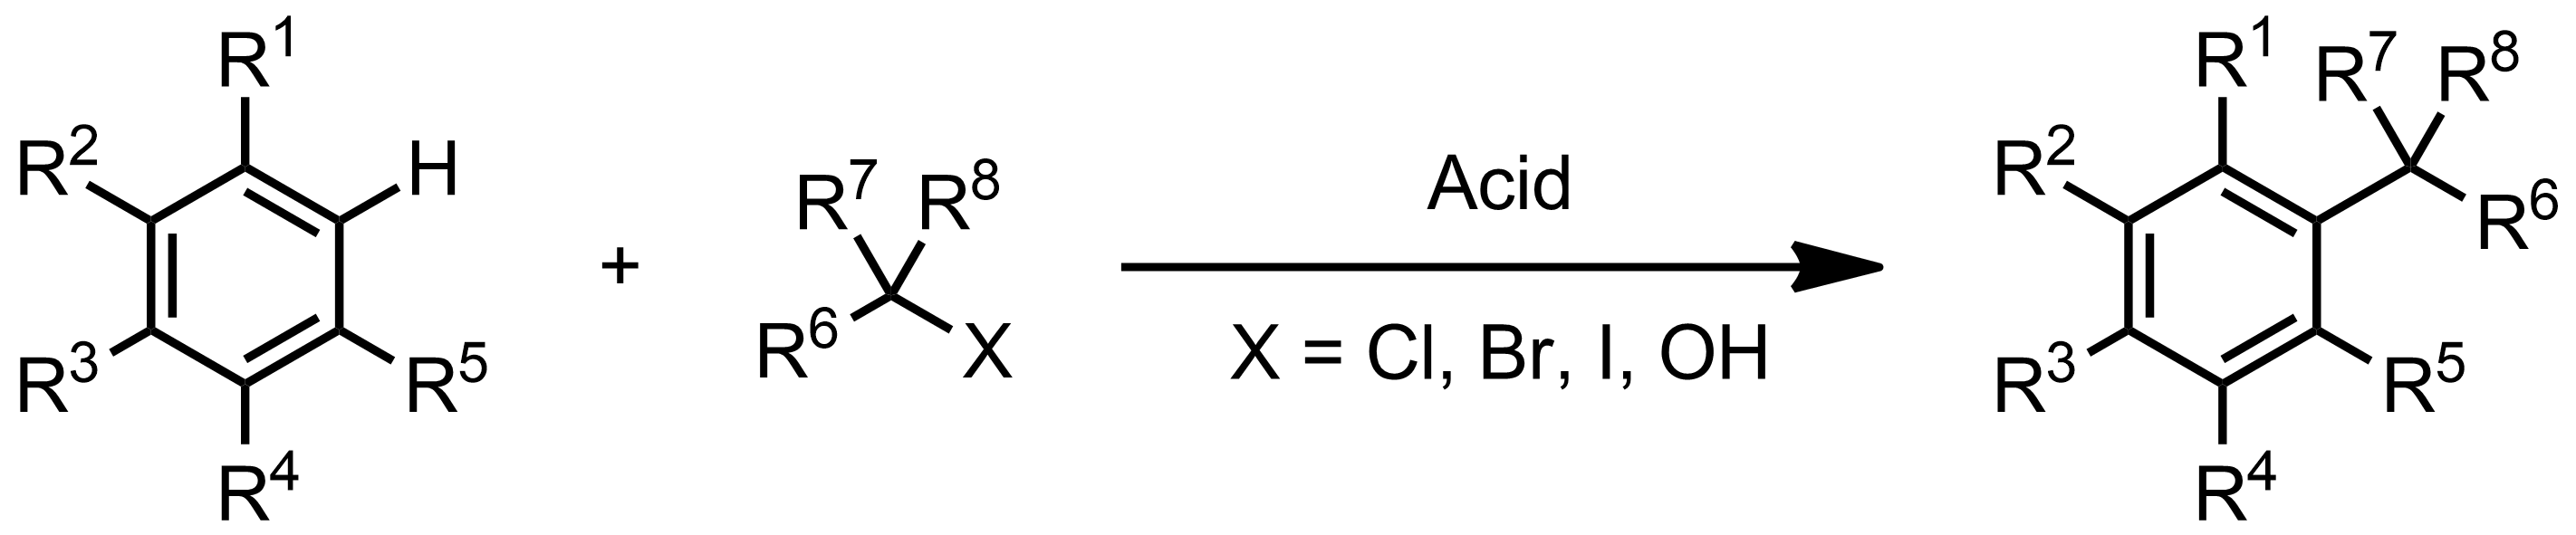 Schematic representation of the Friedel-Crafts Alkylation.